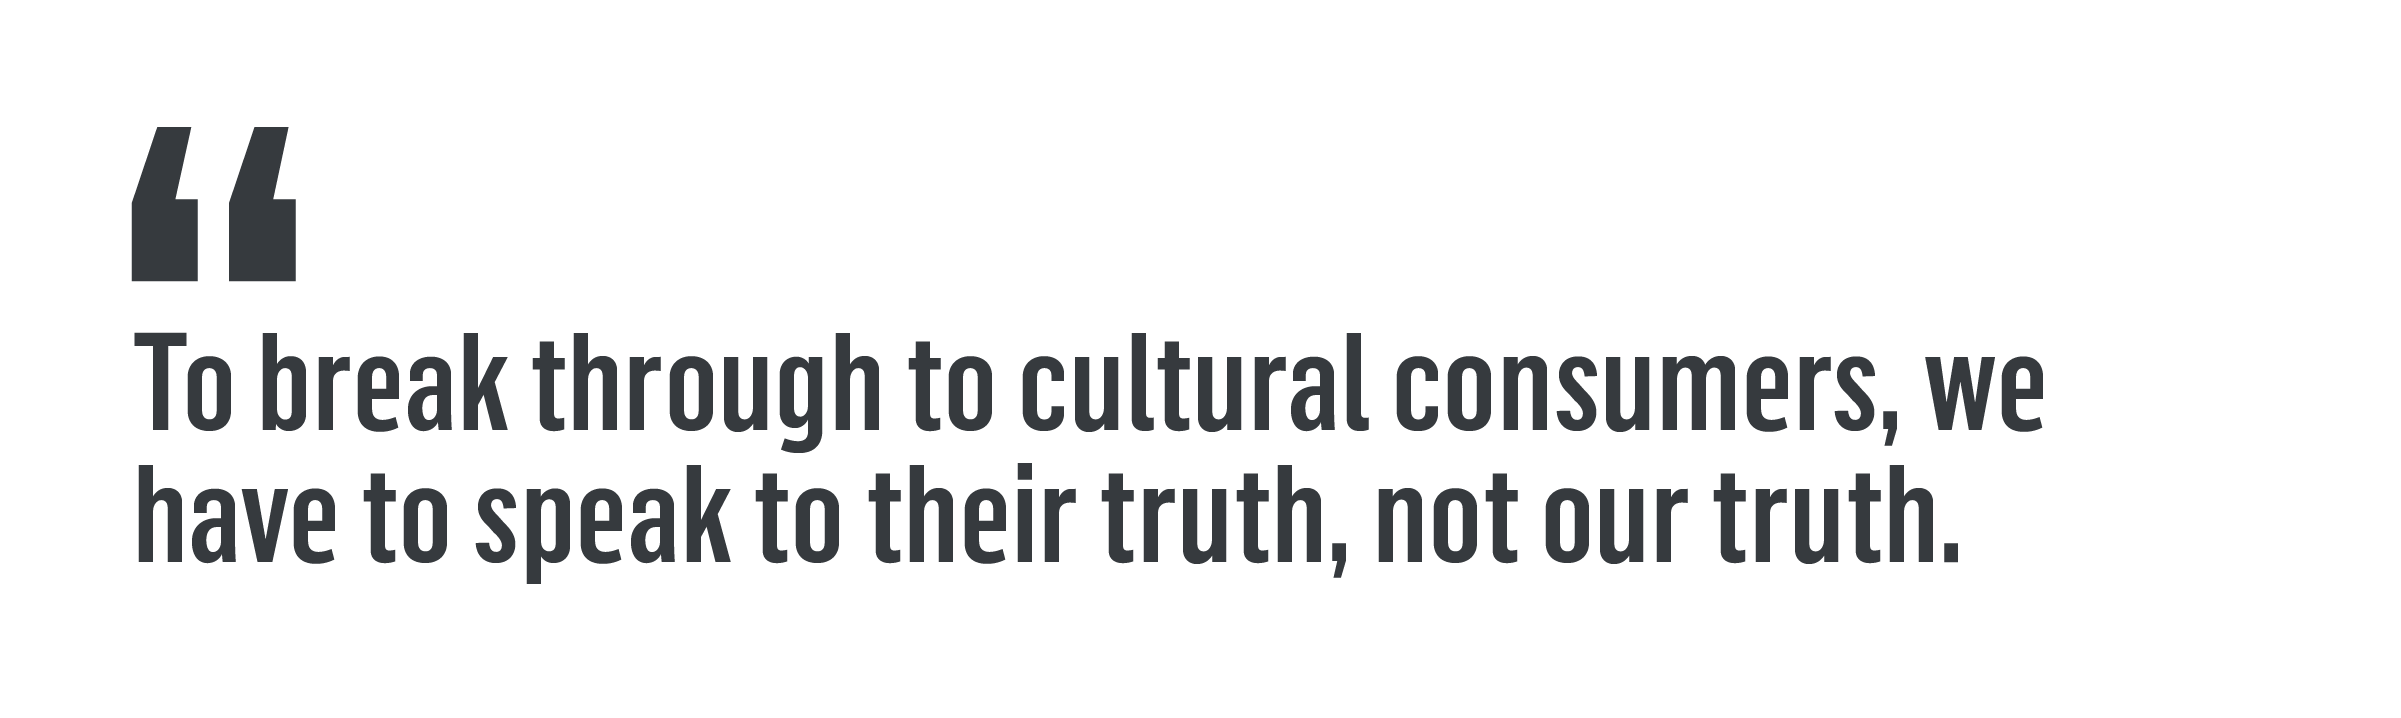 """To break through to cultural consumers, we have to speak to their truth, not our truth."""